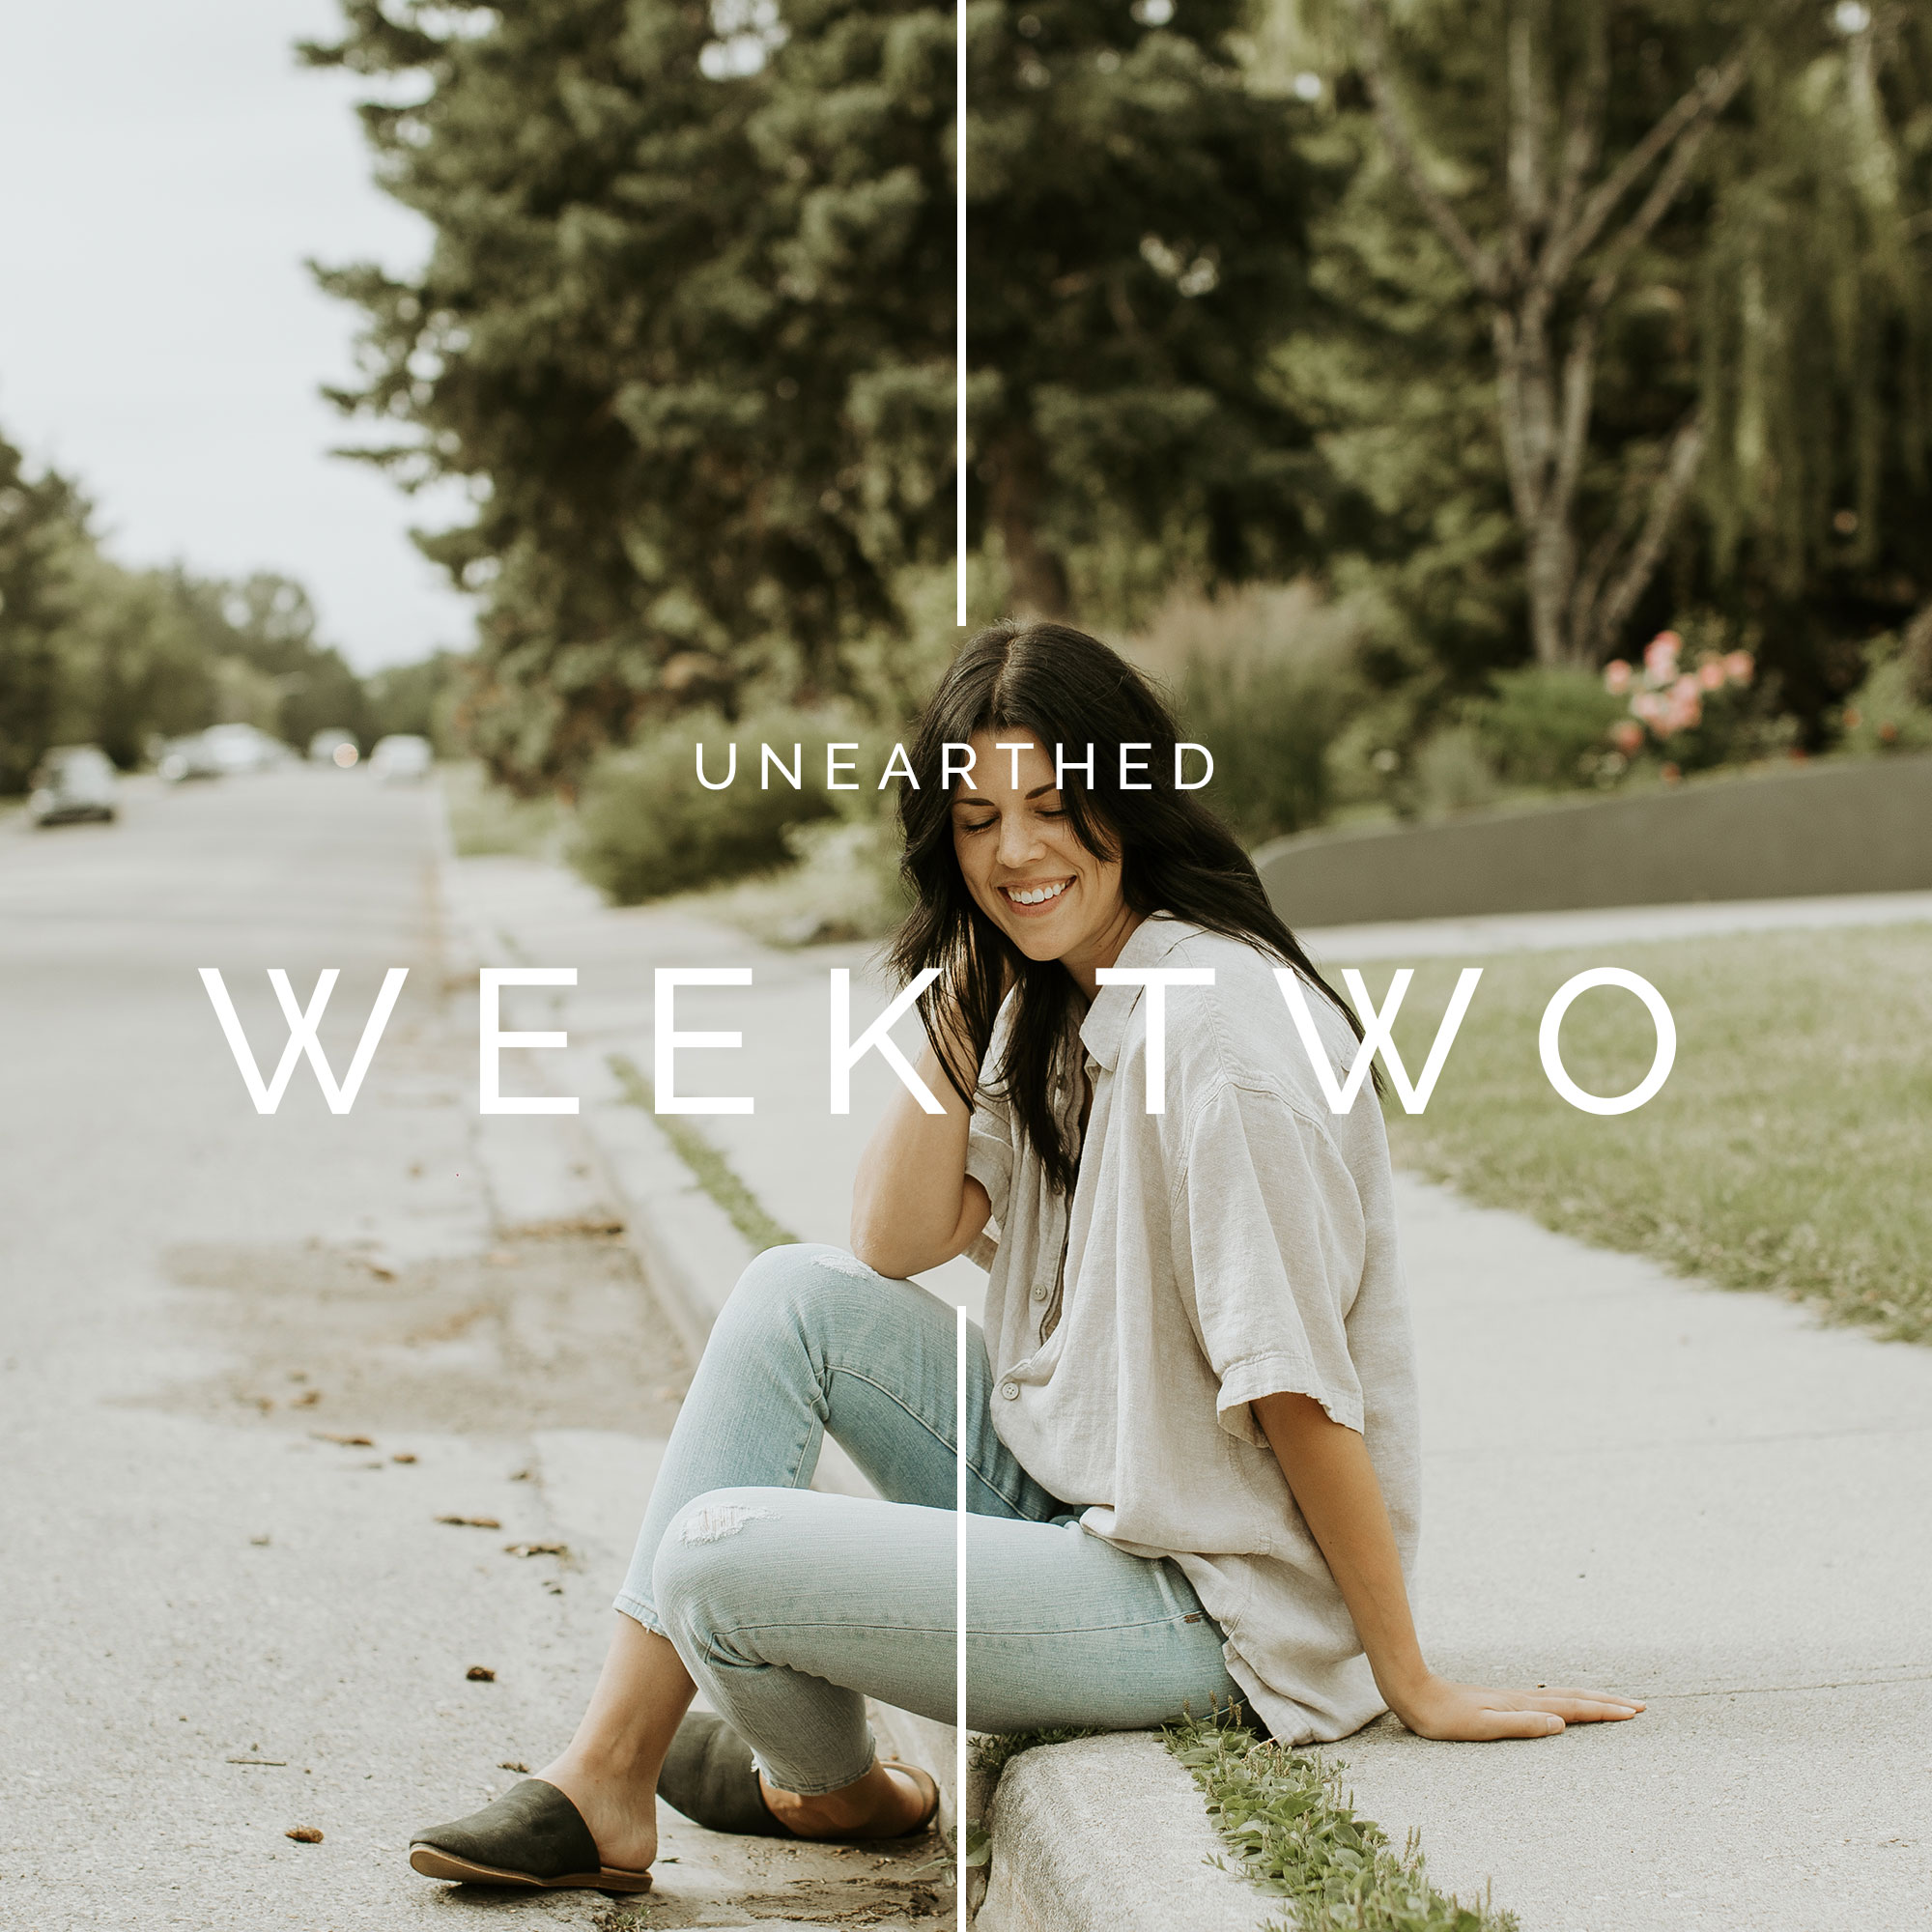 weekotwo-unearthed.jpg